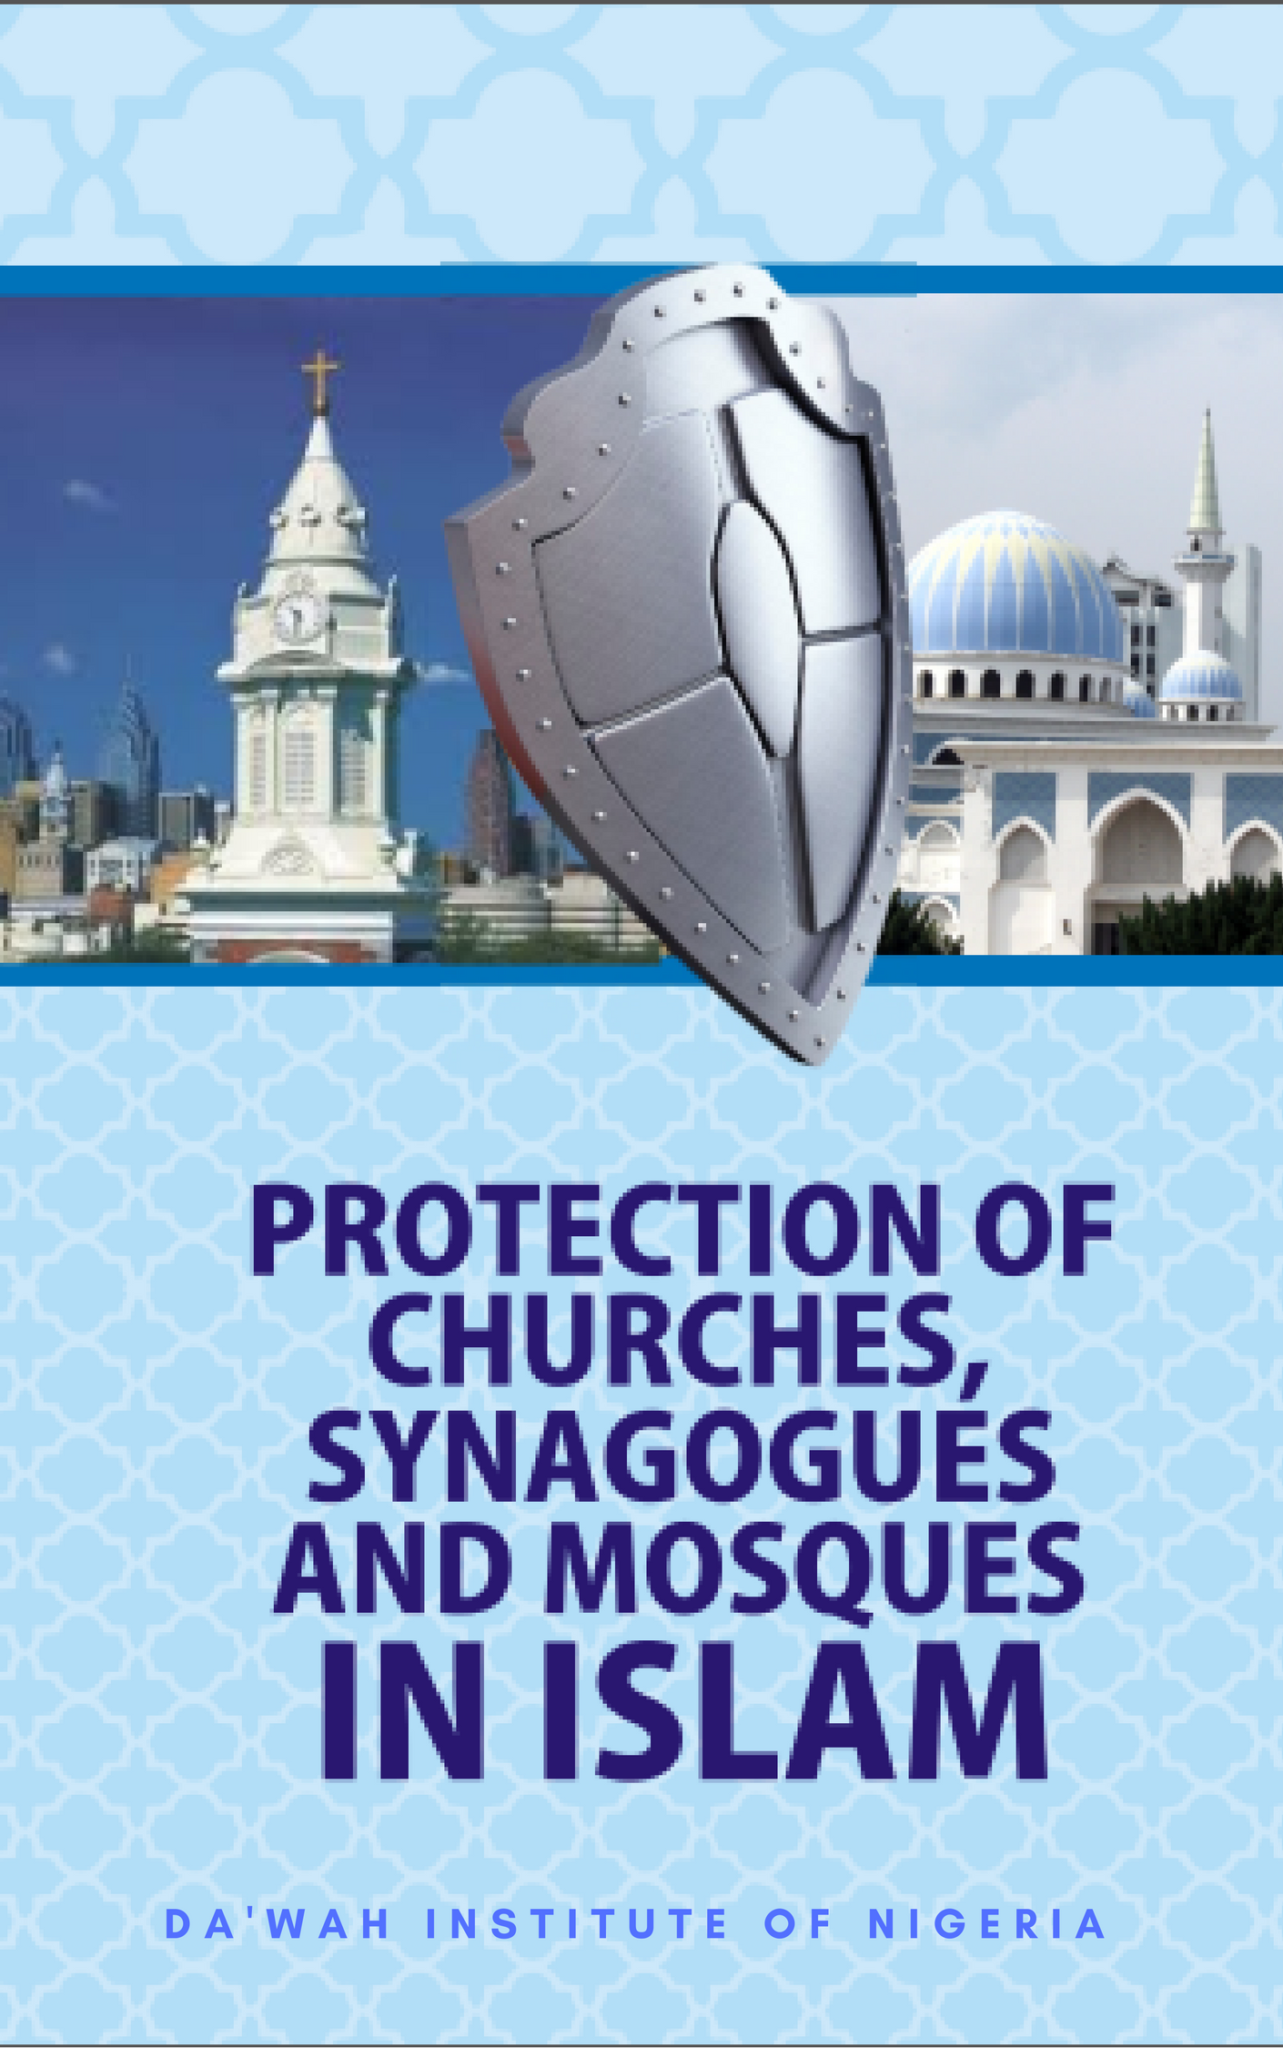 https://dawahinstitute.org/wp-content/uploads/Protection-of-Churches-Synagogues-and-Mosques-in-Islam.png